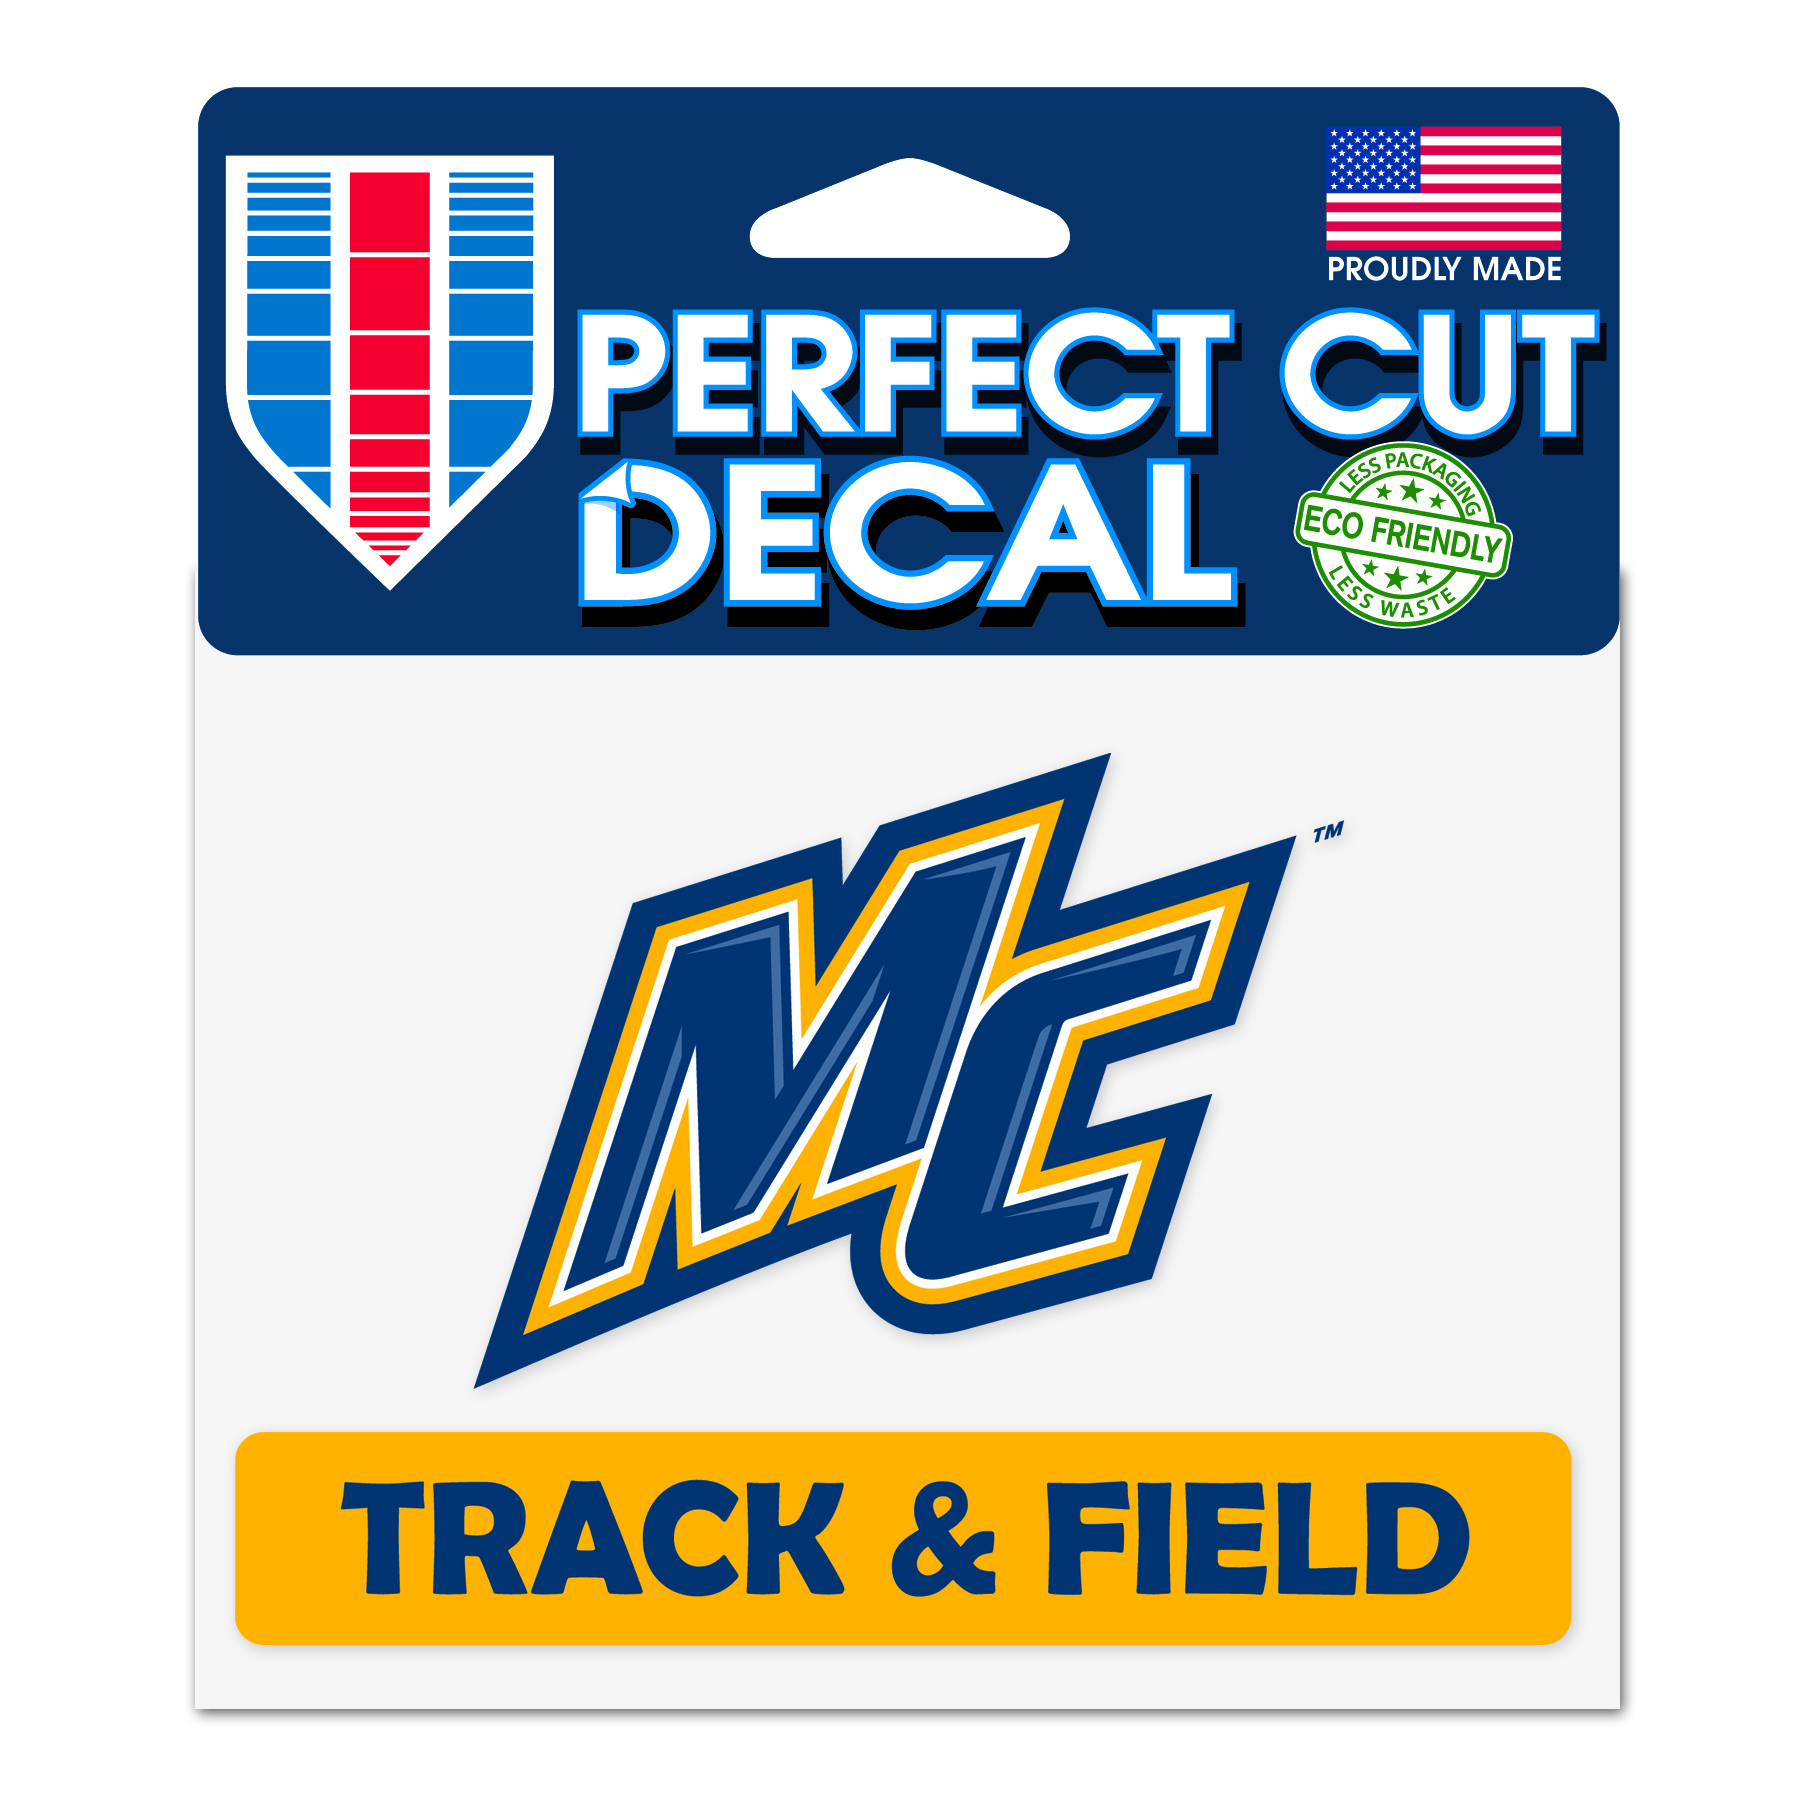 Decal - Track & Field